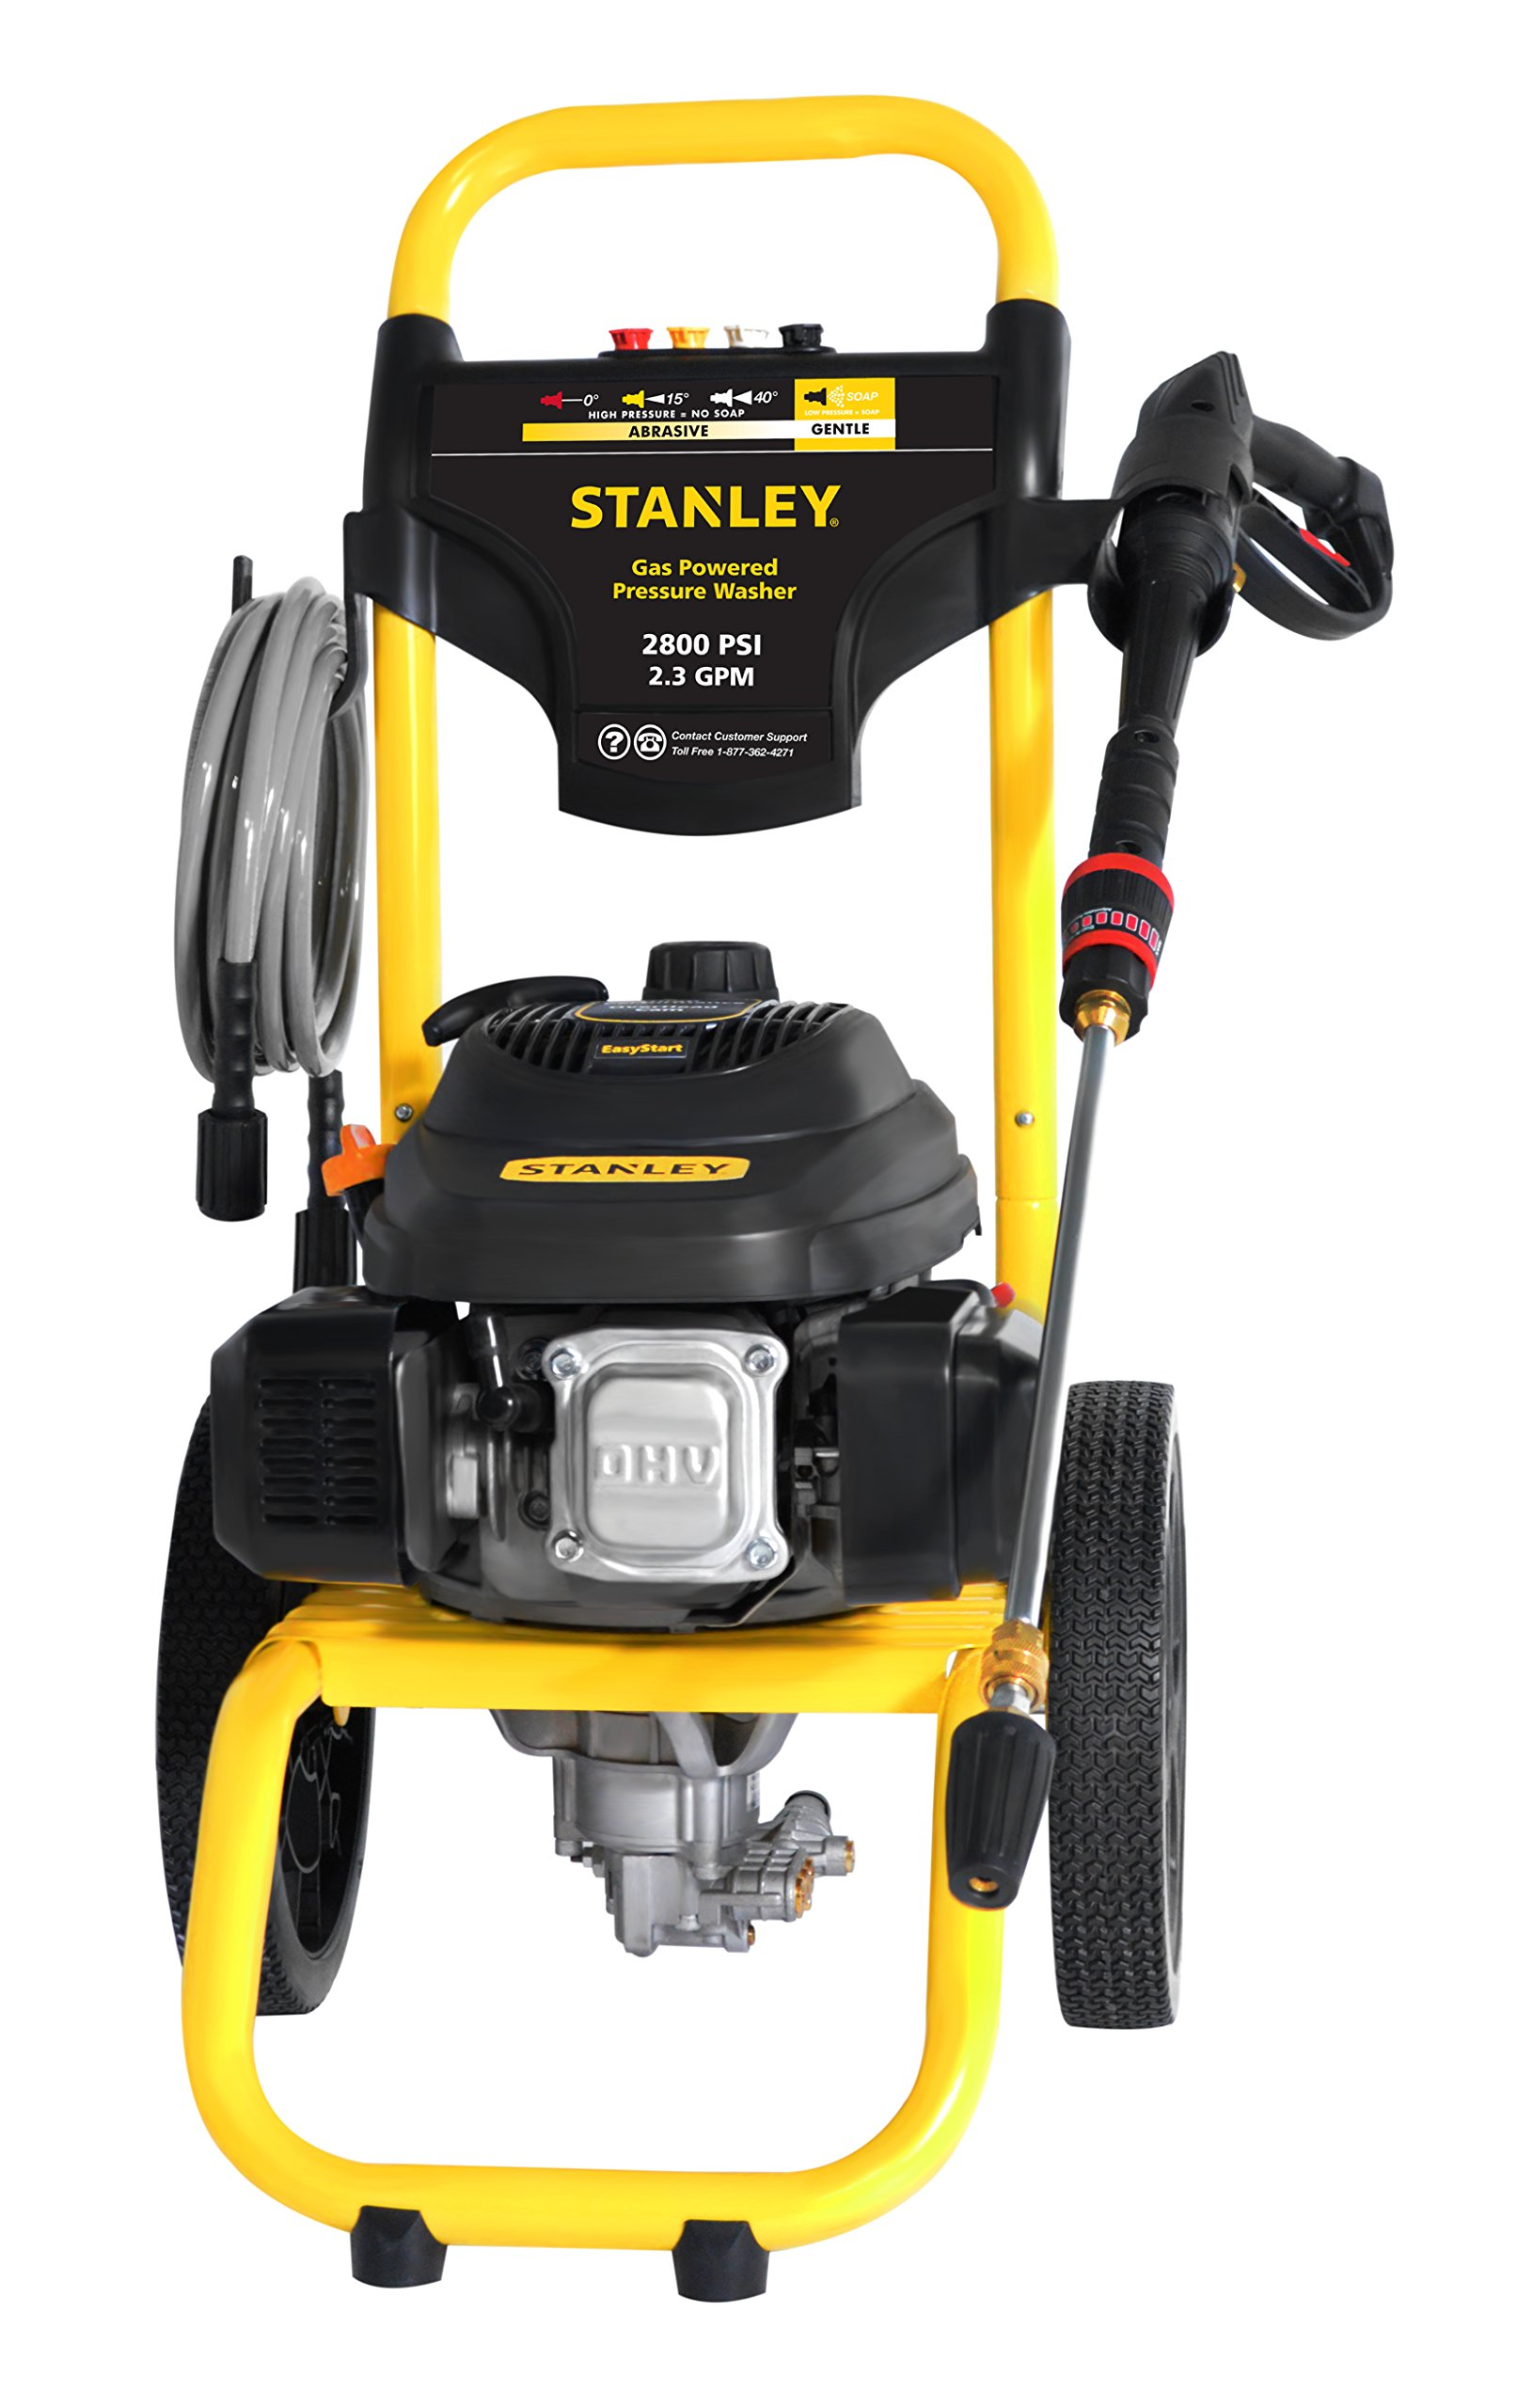 STANLEY SXPW2823 Pressure Powered 50 State